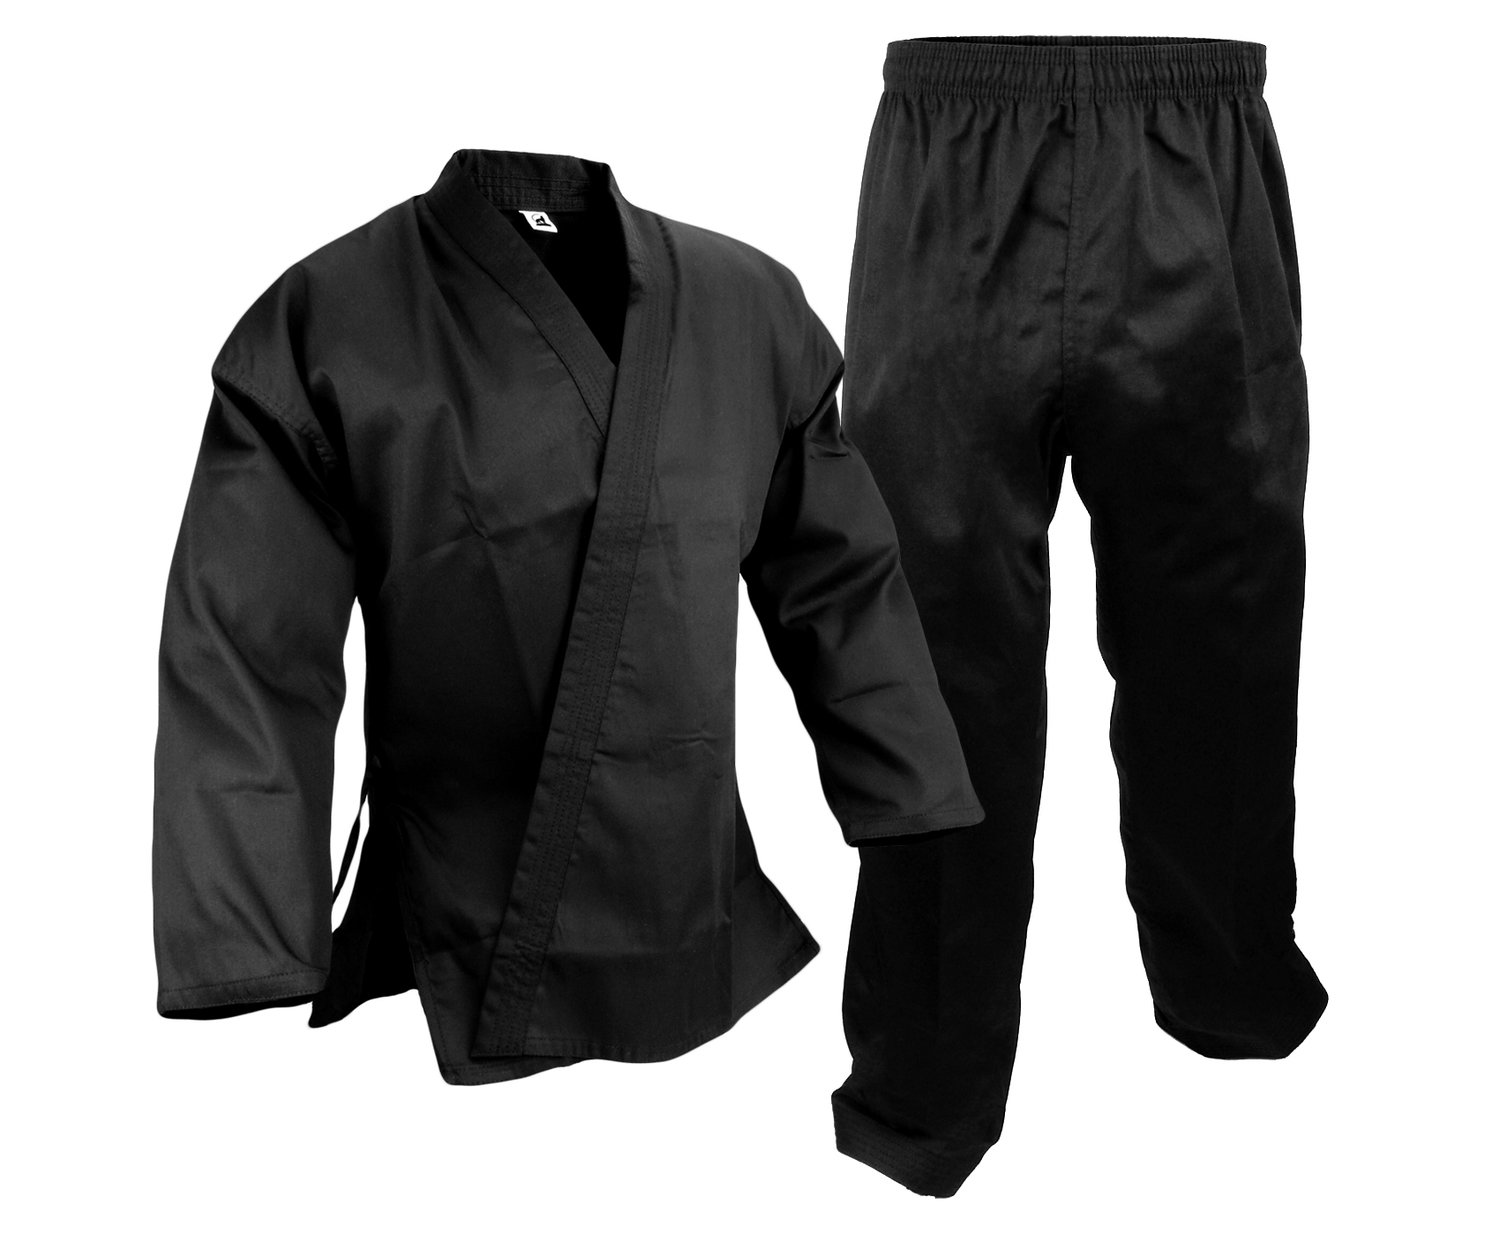 Karate Uniform, Medium W't., Black